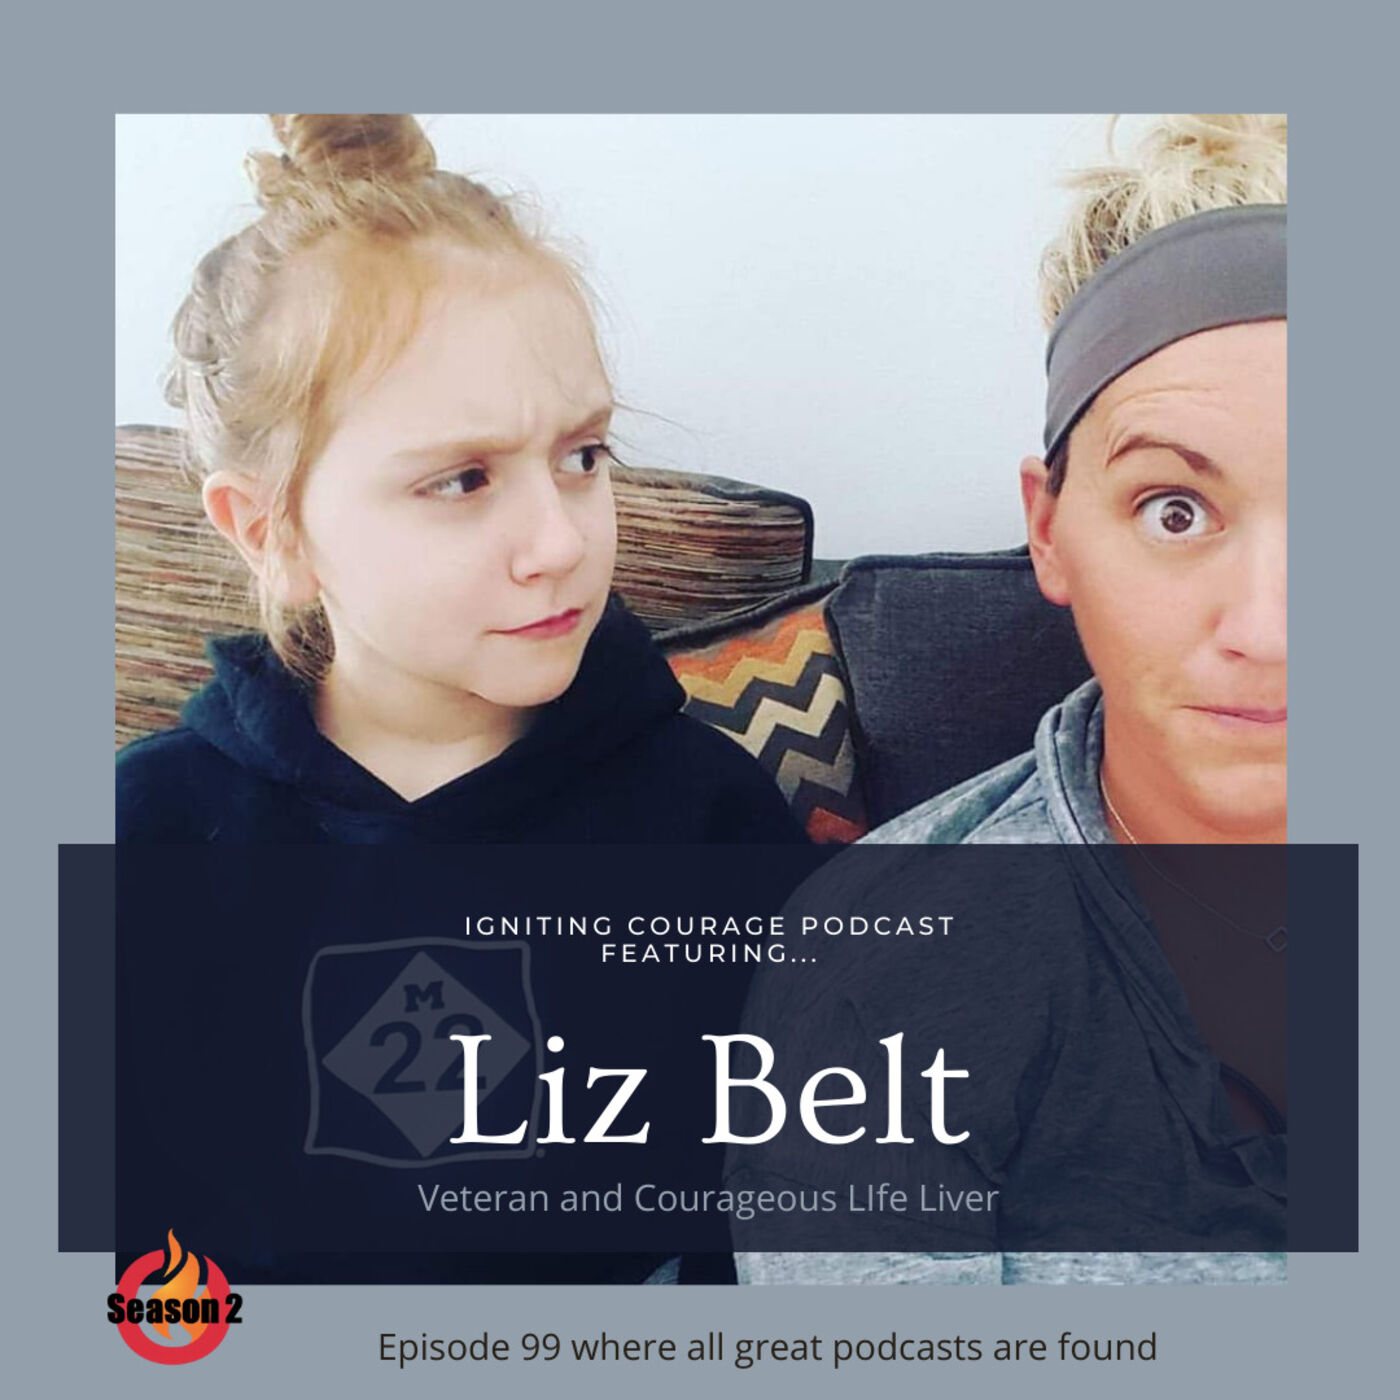 IGNITING COURAGE Podcast Episode 99: Liz Belt, Veteran and Courageous Life Liver